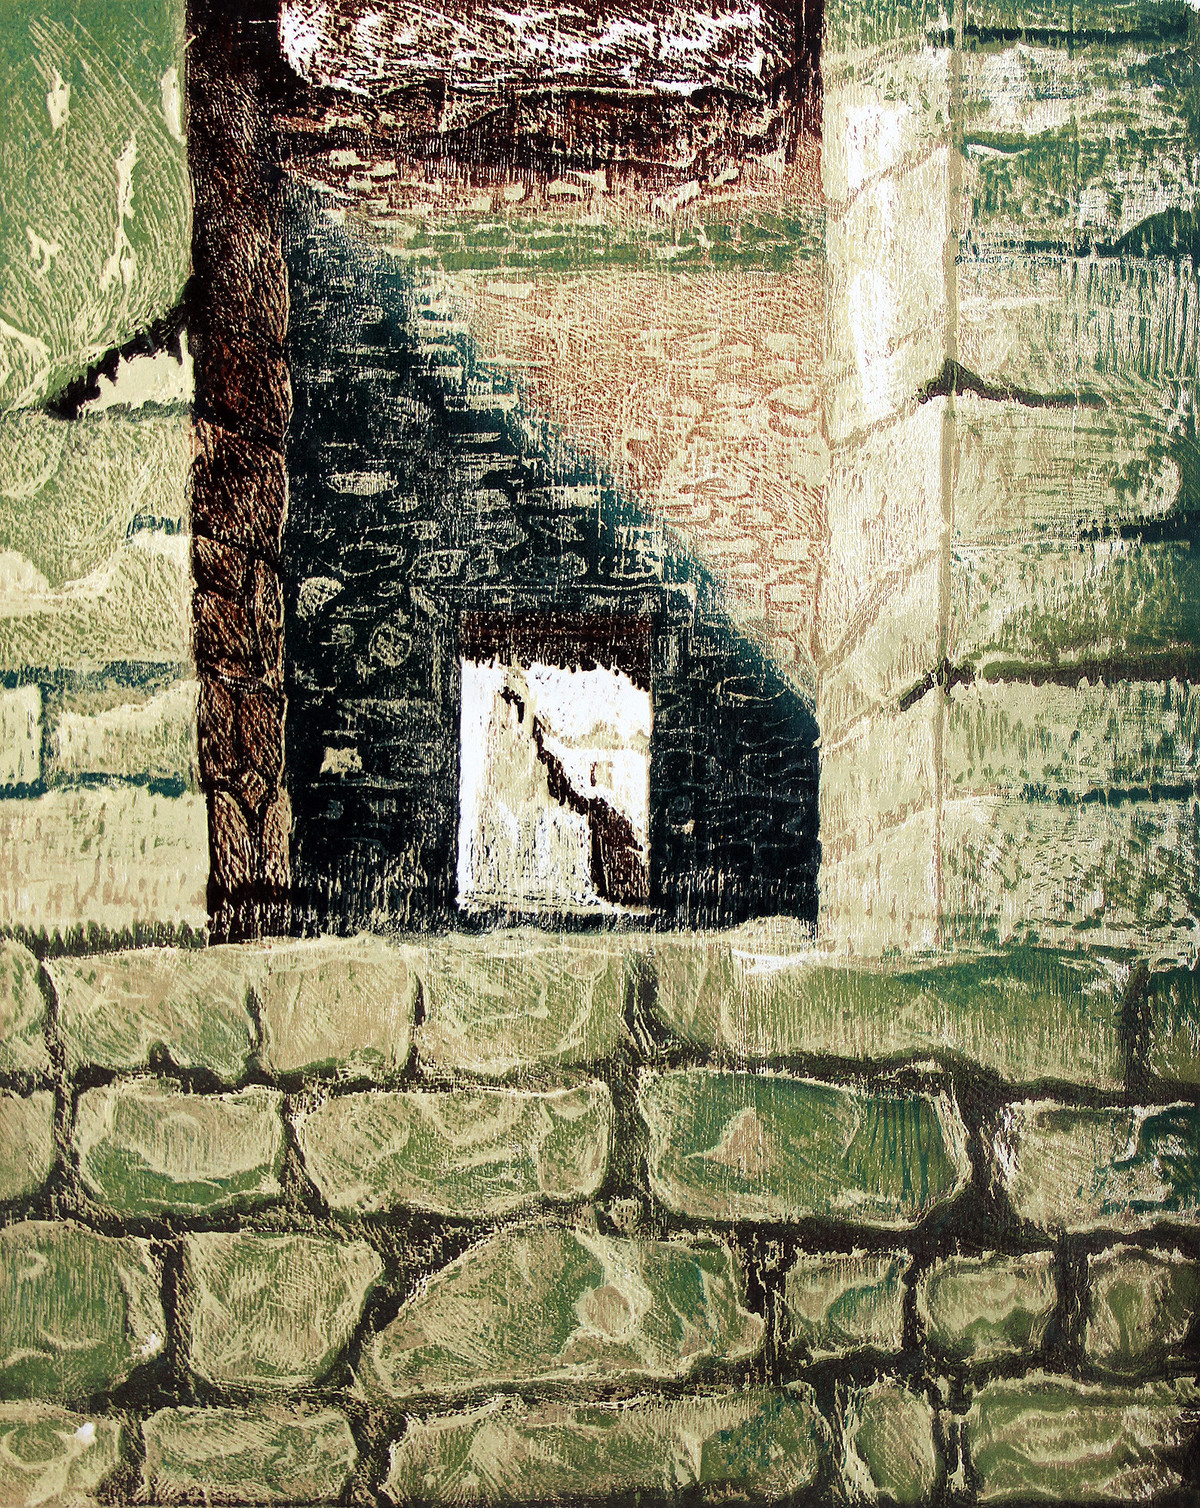 GREEN WINDOW by Tapan Madkikar, Impressionism Printmaking, Wood Cut on Paper, Beige color